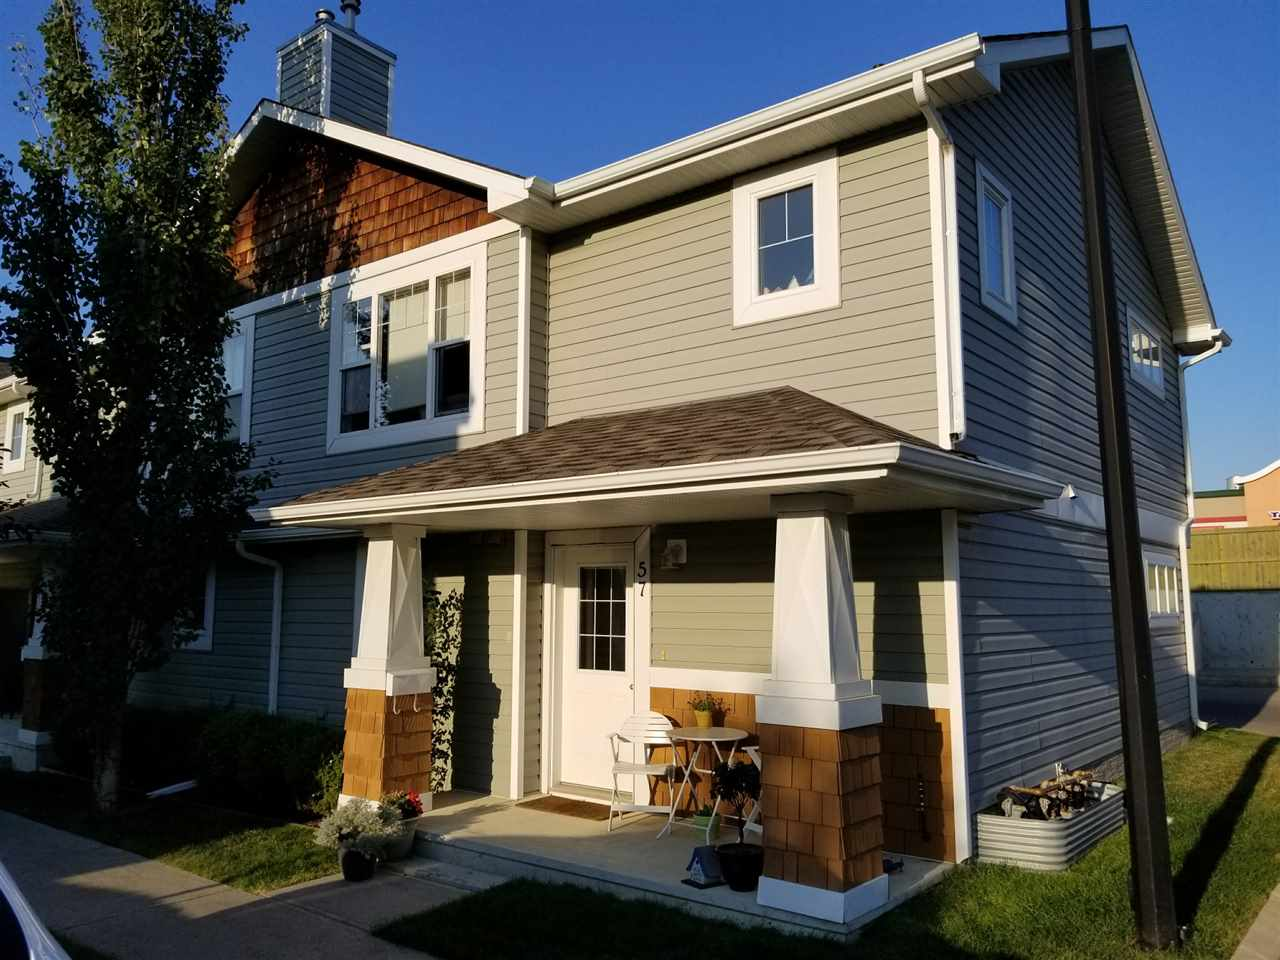 Located in the heart of Sherwood Park, this end unit is move in ready. This 2 Storey townhouse style condo features a single garage and walking distance to all amenities. The main floor has a bedroom, 4 piece bath, access to garage and the laundry/storage room. The upper level features a great room floorplan with a living room, kitchen with black appliances, Master bedroom and another 4 piece bath. Out front is your West facing concrete patio with natural gas BBQ hookup and room for a patio table and chairs. Low condo fees, an Adult only complex in a well maintained community.